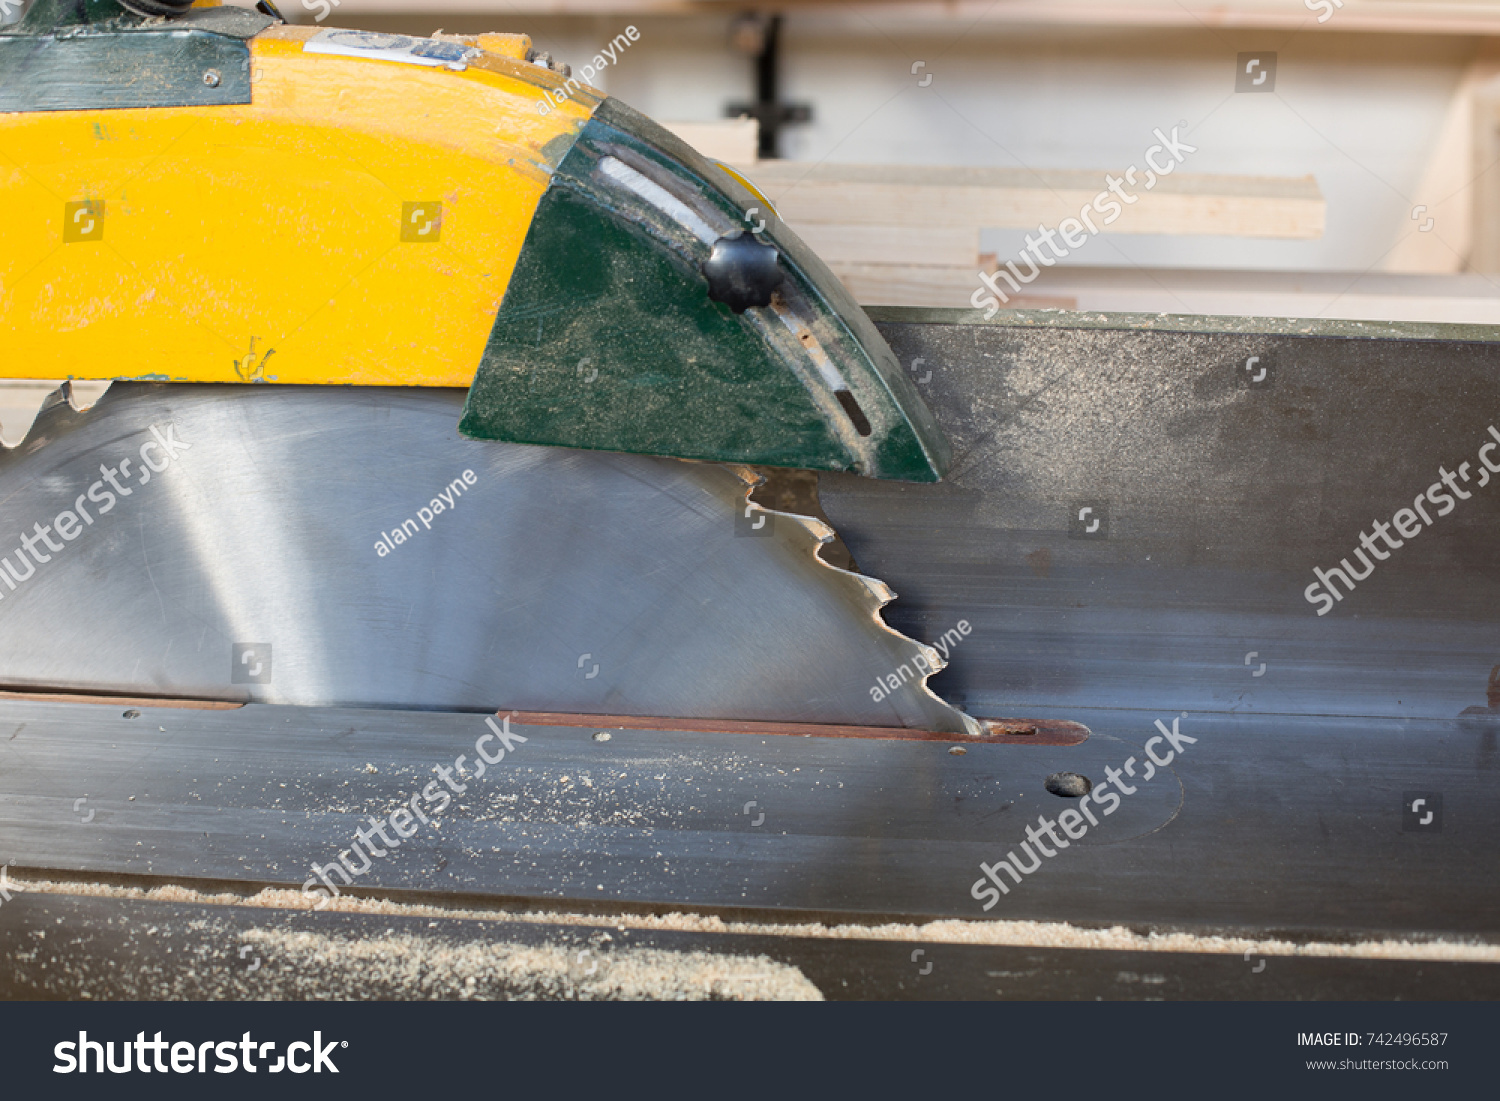 Enjoyable Close Circular Saw Bench Sharp Rotary Stock Photo Edit Now Ocoug Best Dining Table And Chair Ideas Images Ocougorg